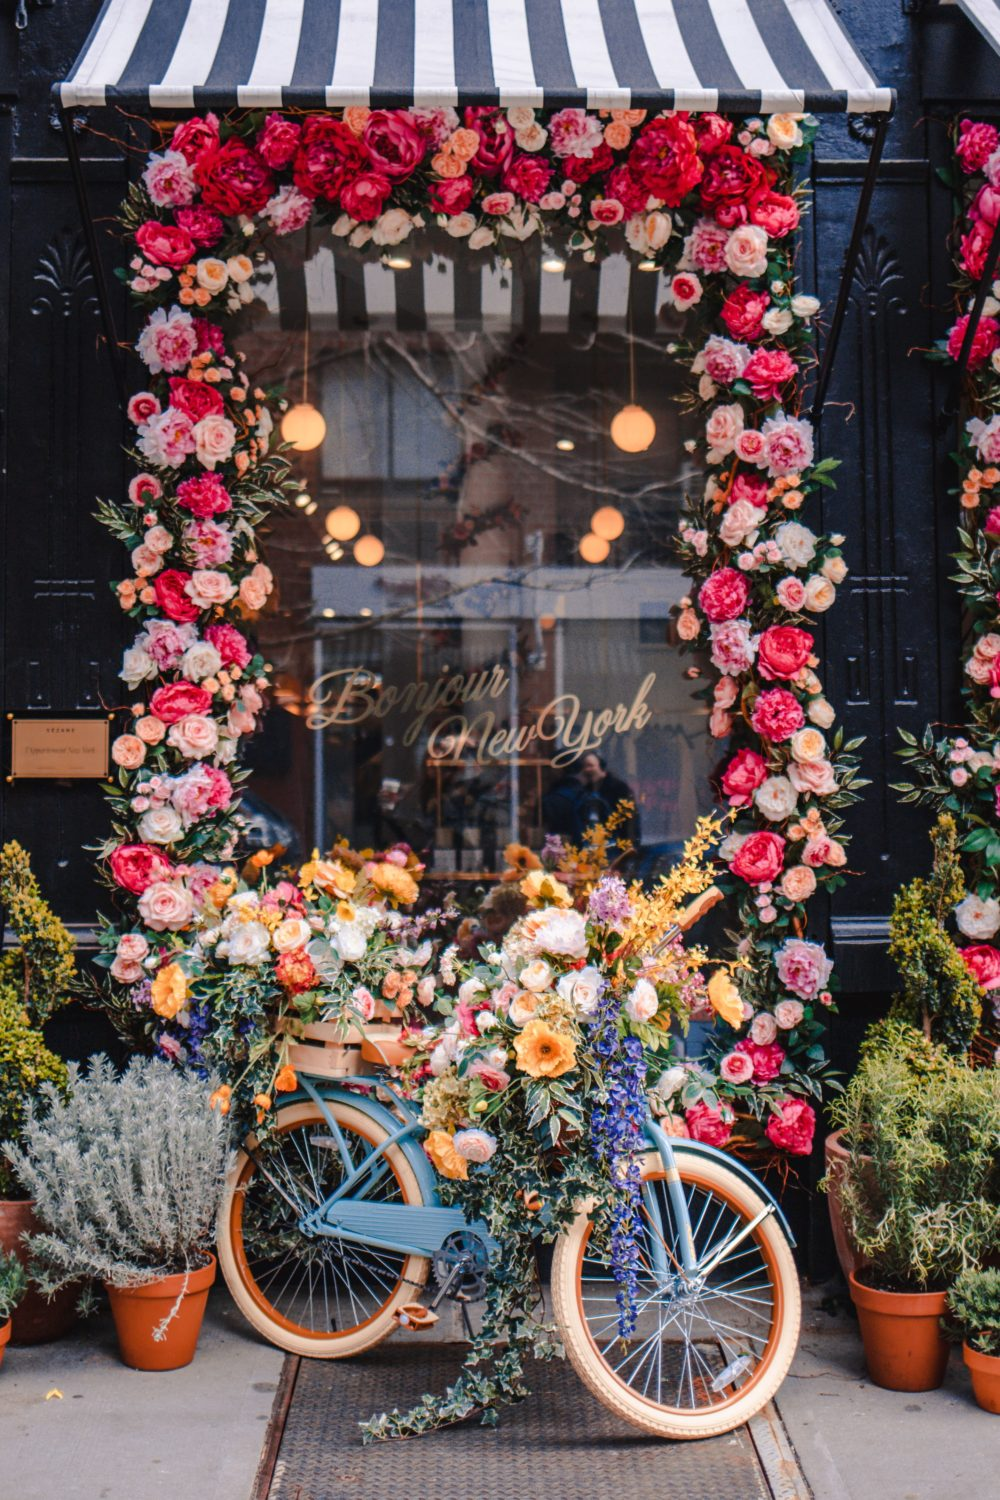 6 Charming Things to do in NYC During Spring: Find Fancy Facades